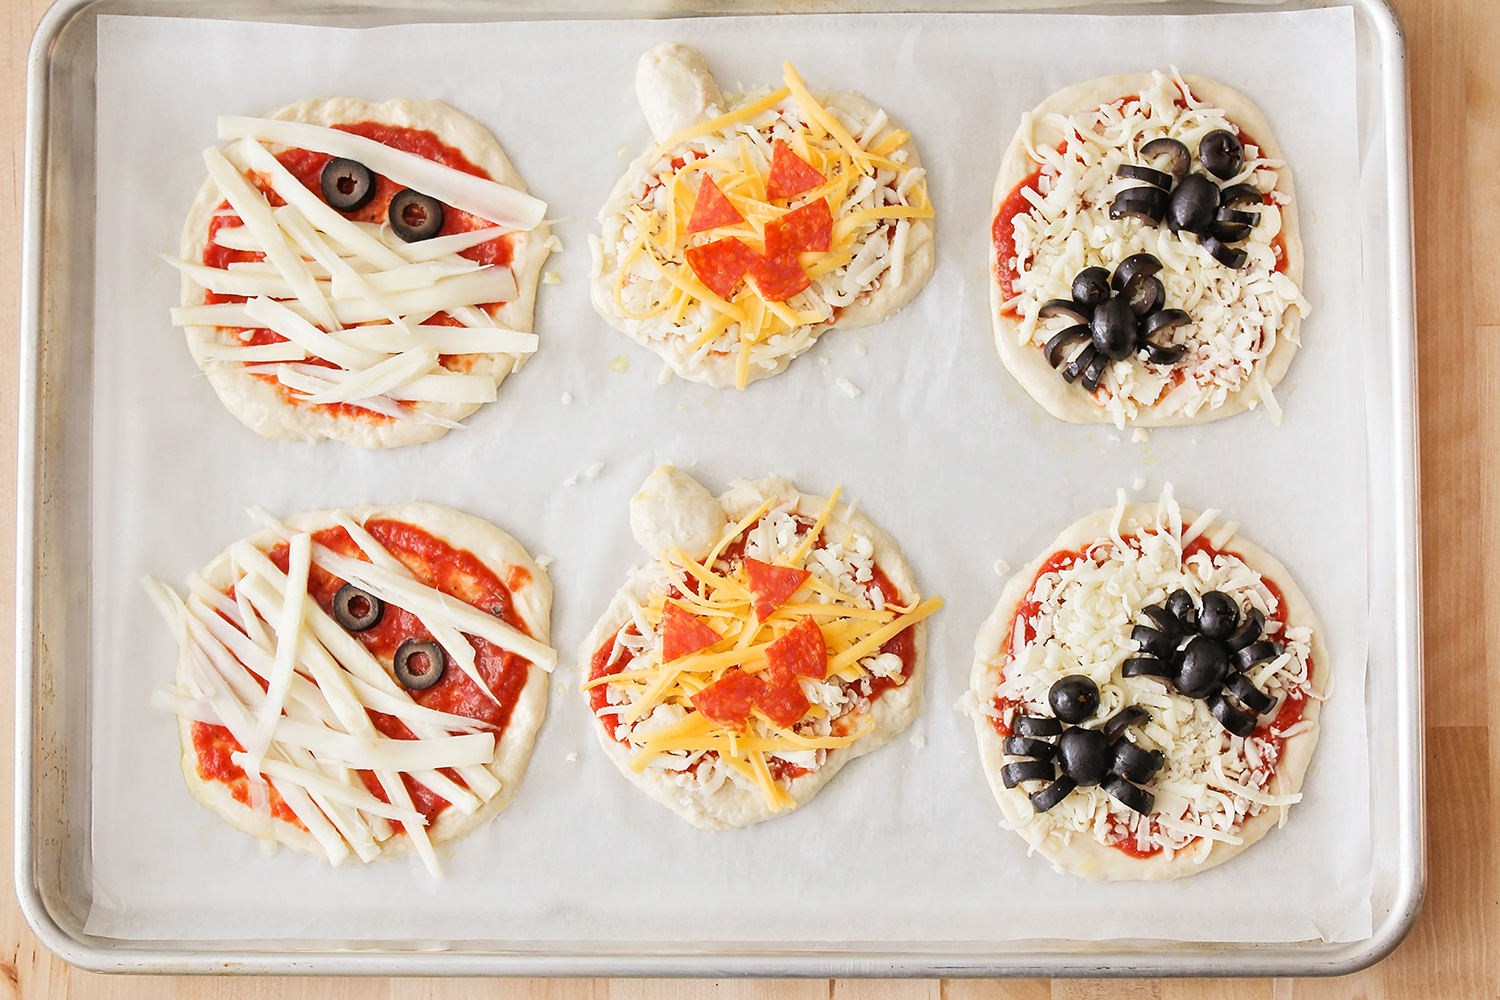 These Halloween mini pizzas are adorable and so easy to make! A fun and delicious Halloween dinner the whole family will love!